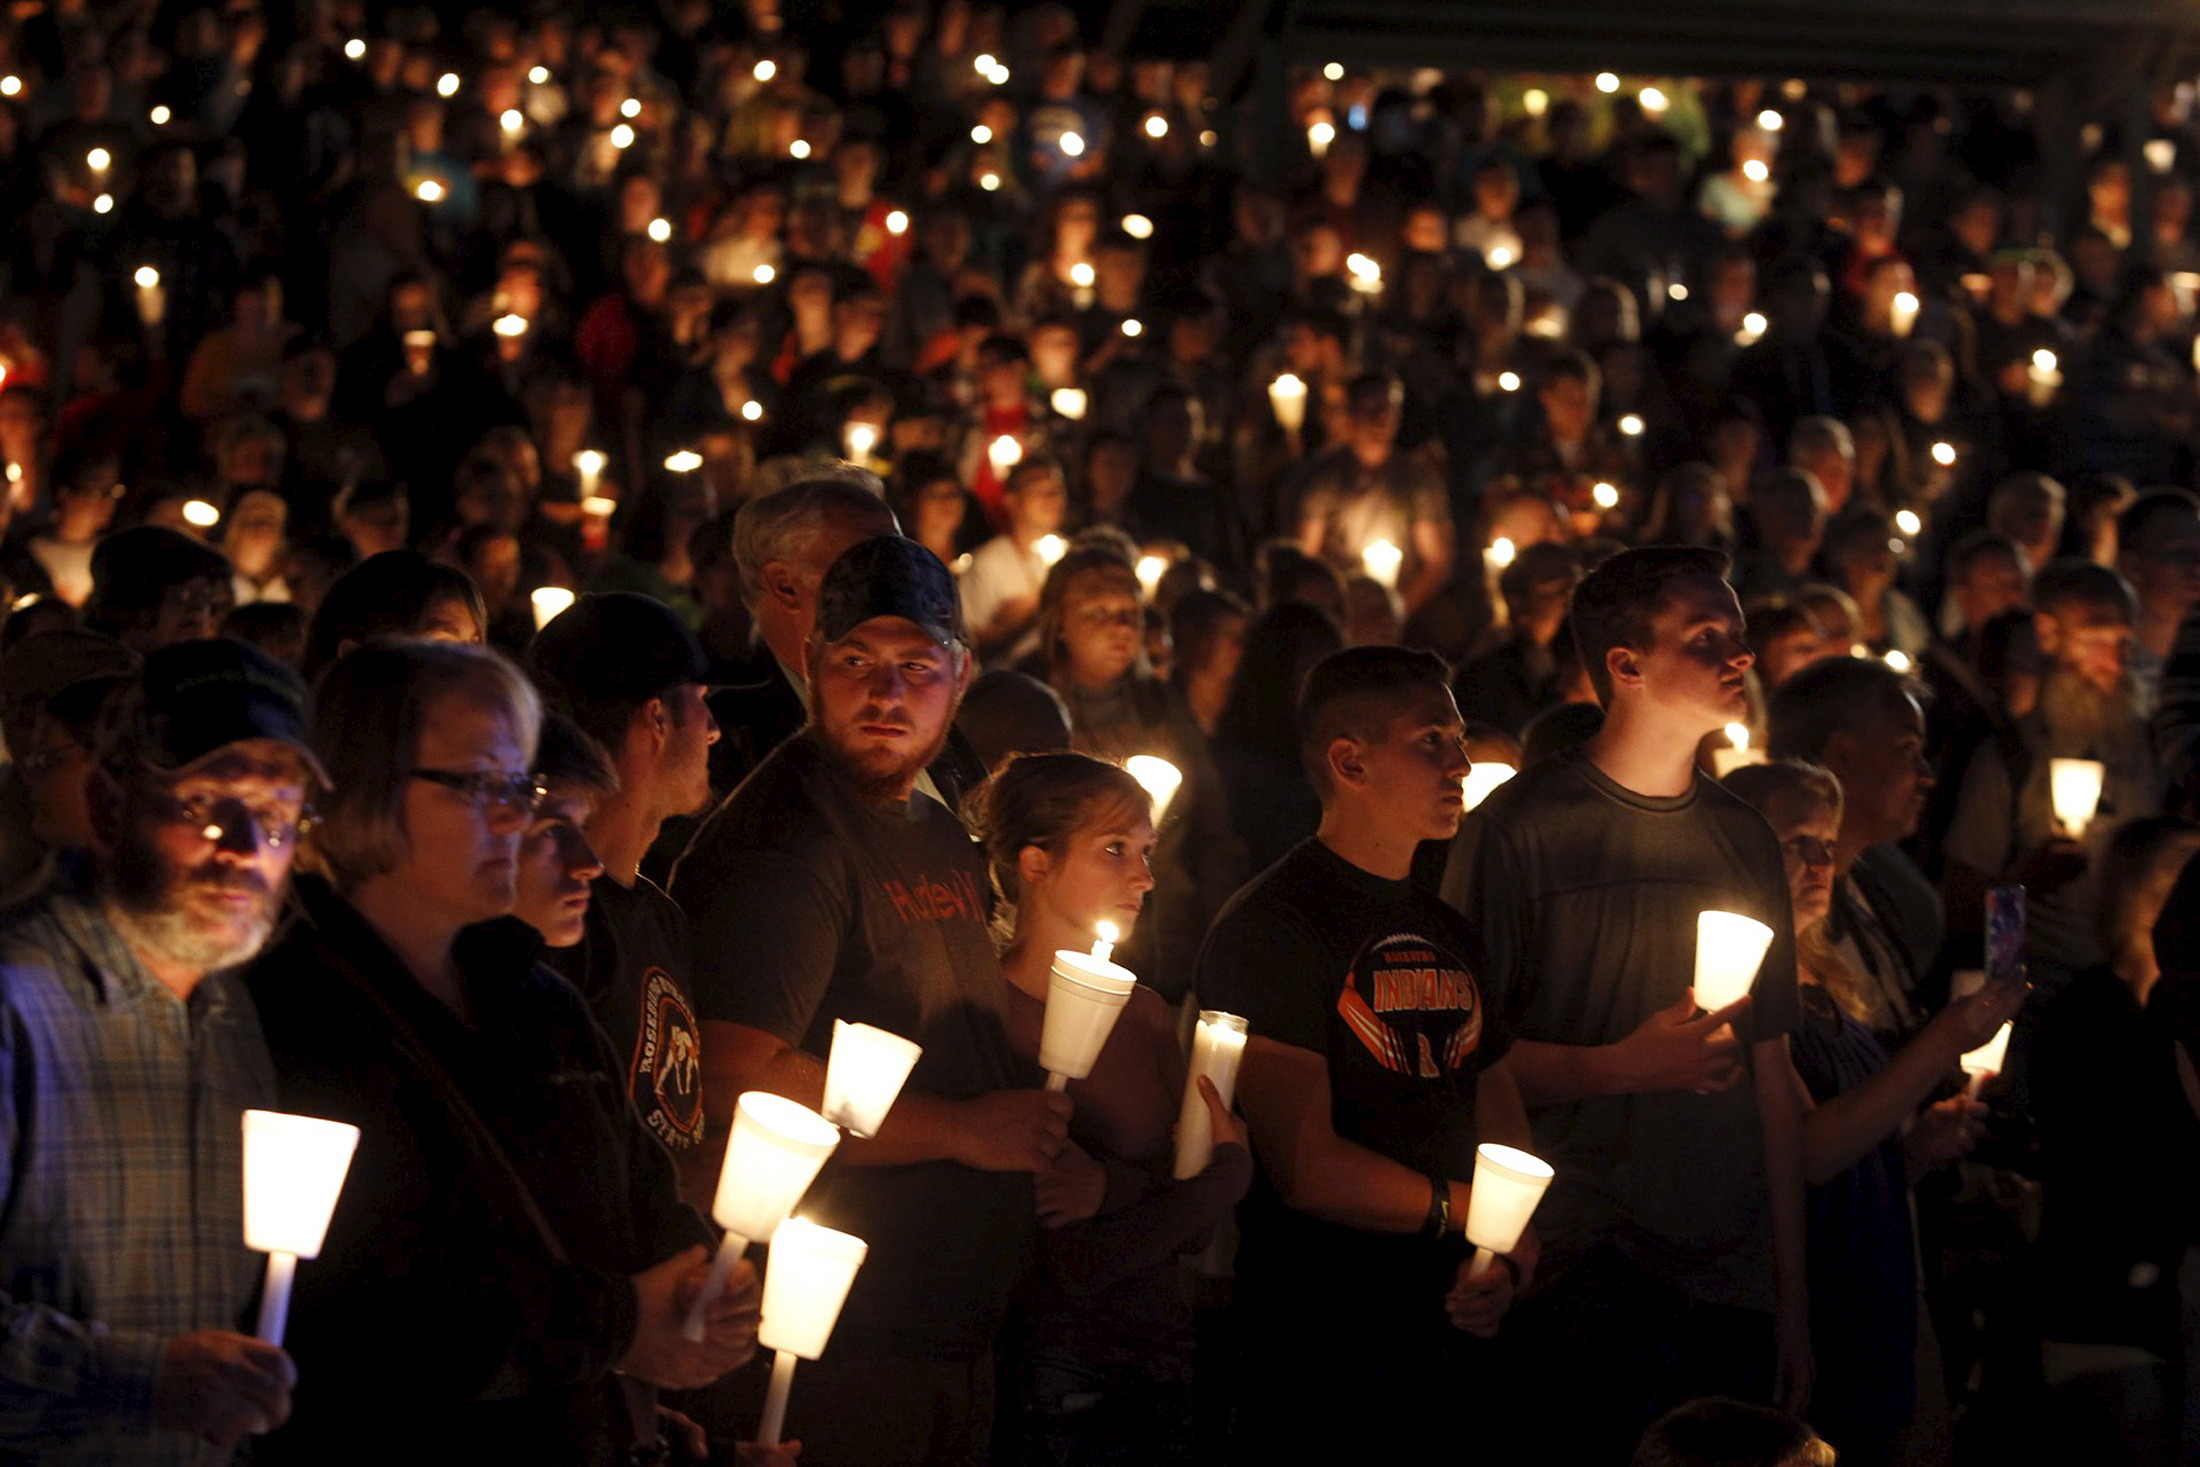 People take part in candlelight vigil following Thursday's mass shooting at Umpqua Community College in Roseburg, Ore. Photo by Steve Dipaola/Reuters